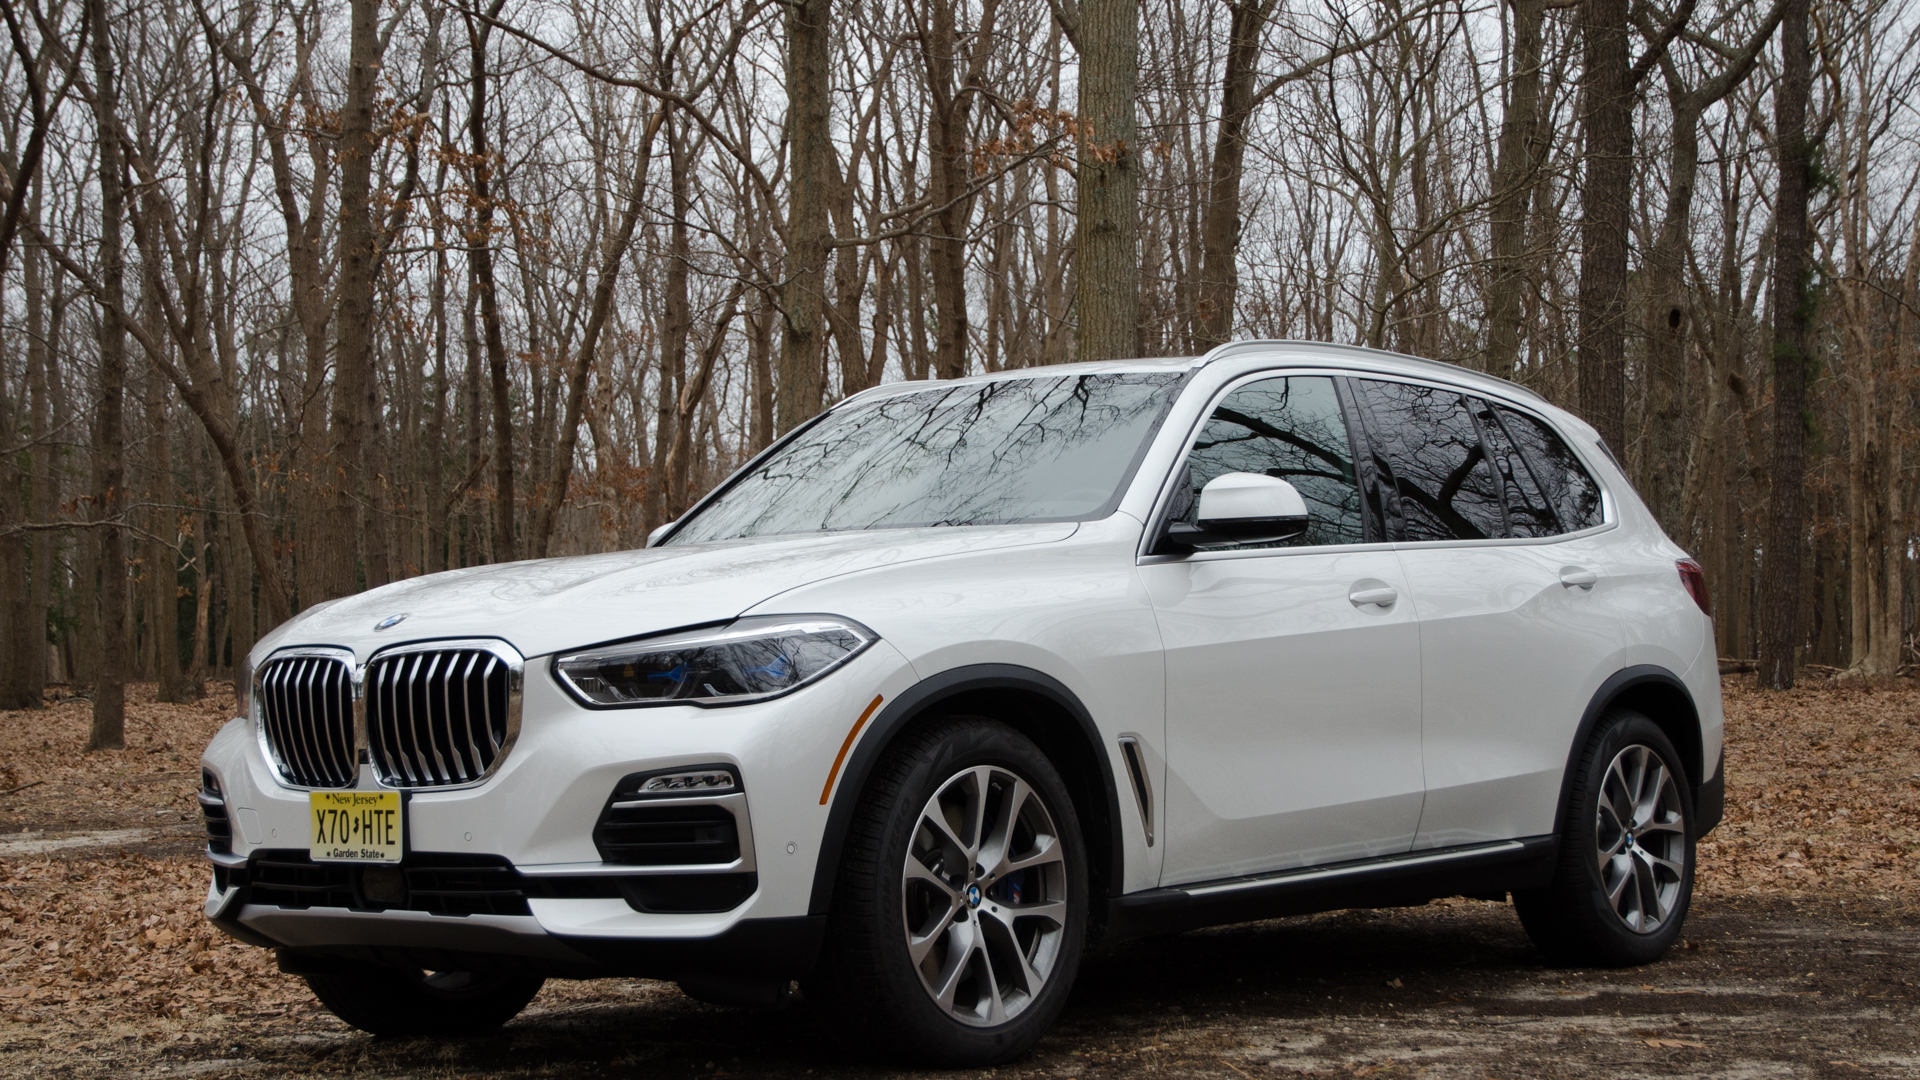 2019 BMW X5 xDrive40i E53 X5 Comparison 1 of 2